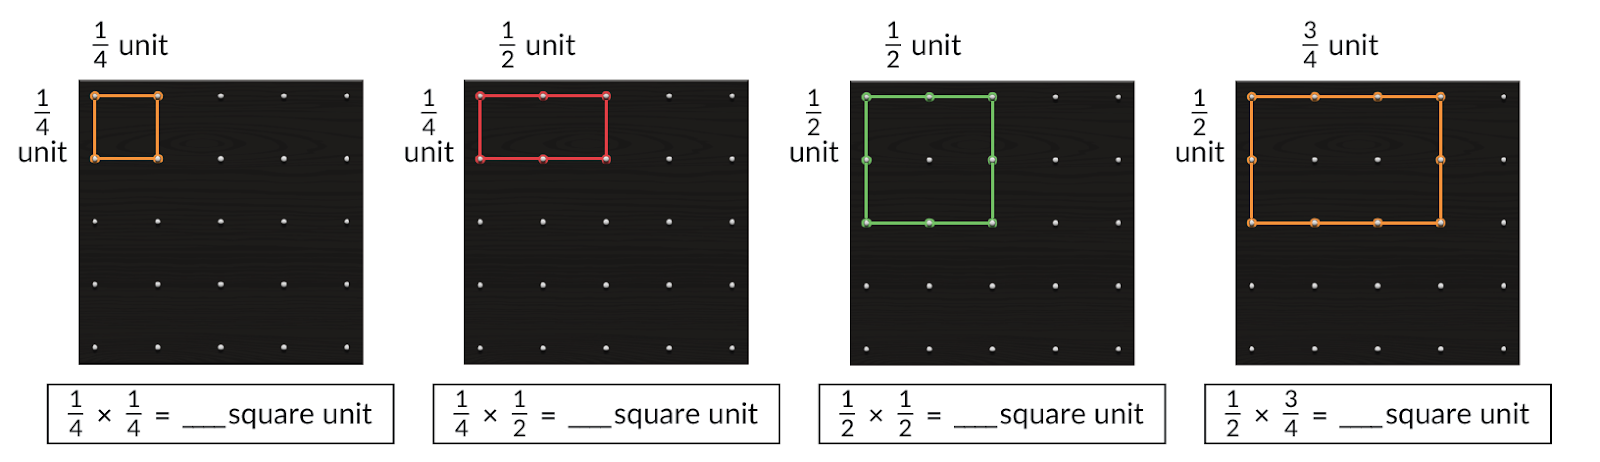 First, a geoboard grid with a square 1-fourth unit by 1-fourth unit. 1-fourth times 1-fourth = blank square unit. Next, a geoboard grid with a 1-fourth unit by 1-half unit rectangle. 1-fourth times 1-half = blank square unit. Then, a geoboard grid with a square 1-half unit by 1-half unit. 1-half times 1-half = blank square unit. Last, a geoboard grid with a 1-half unit by 3-fourths unit rectangle. 1-half times 3-fourths = blank square unit.